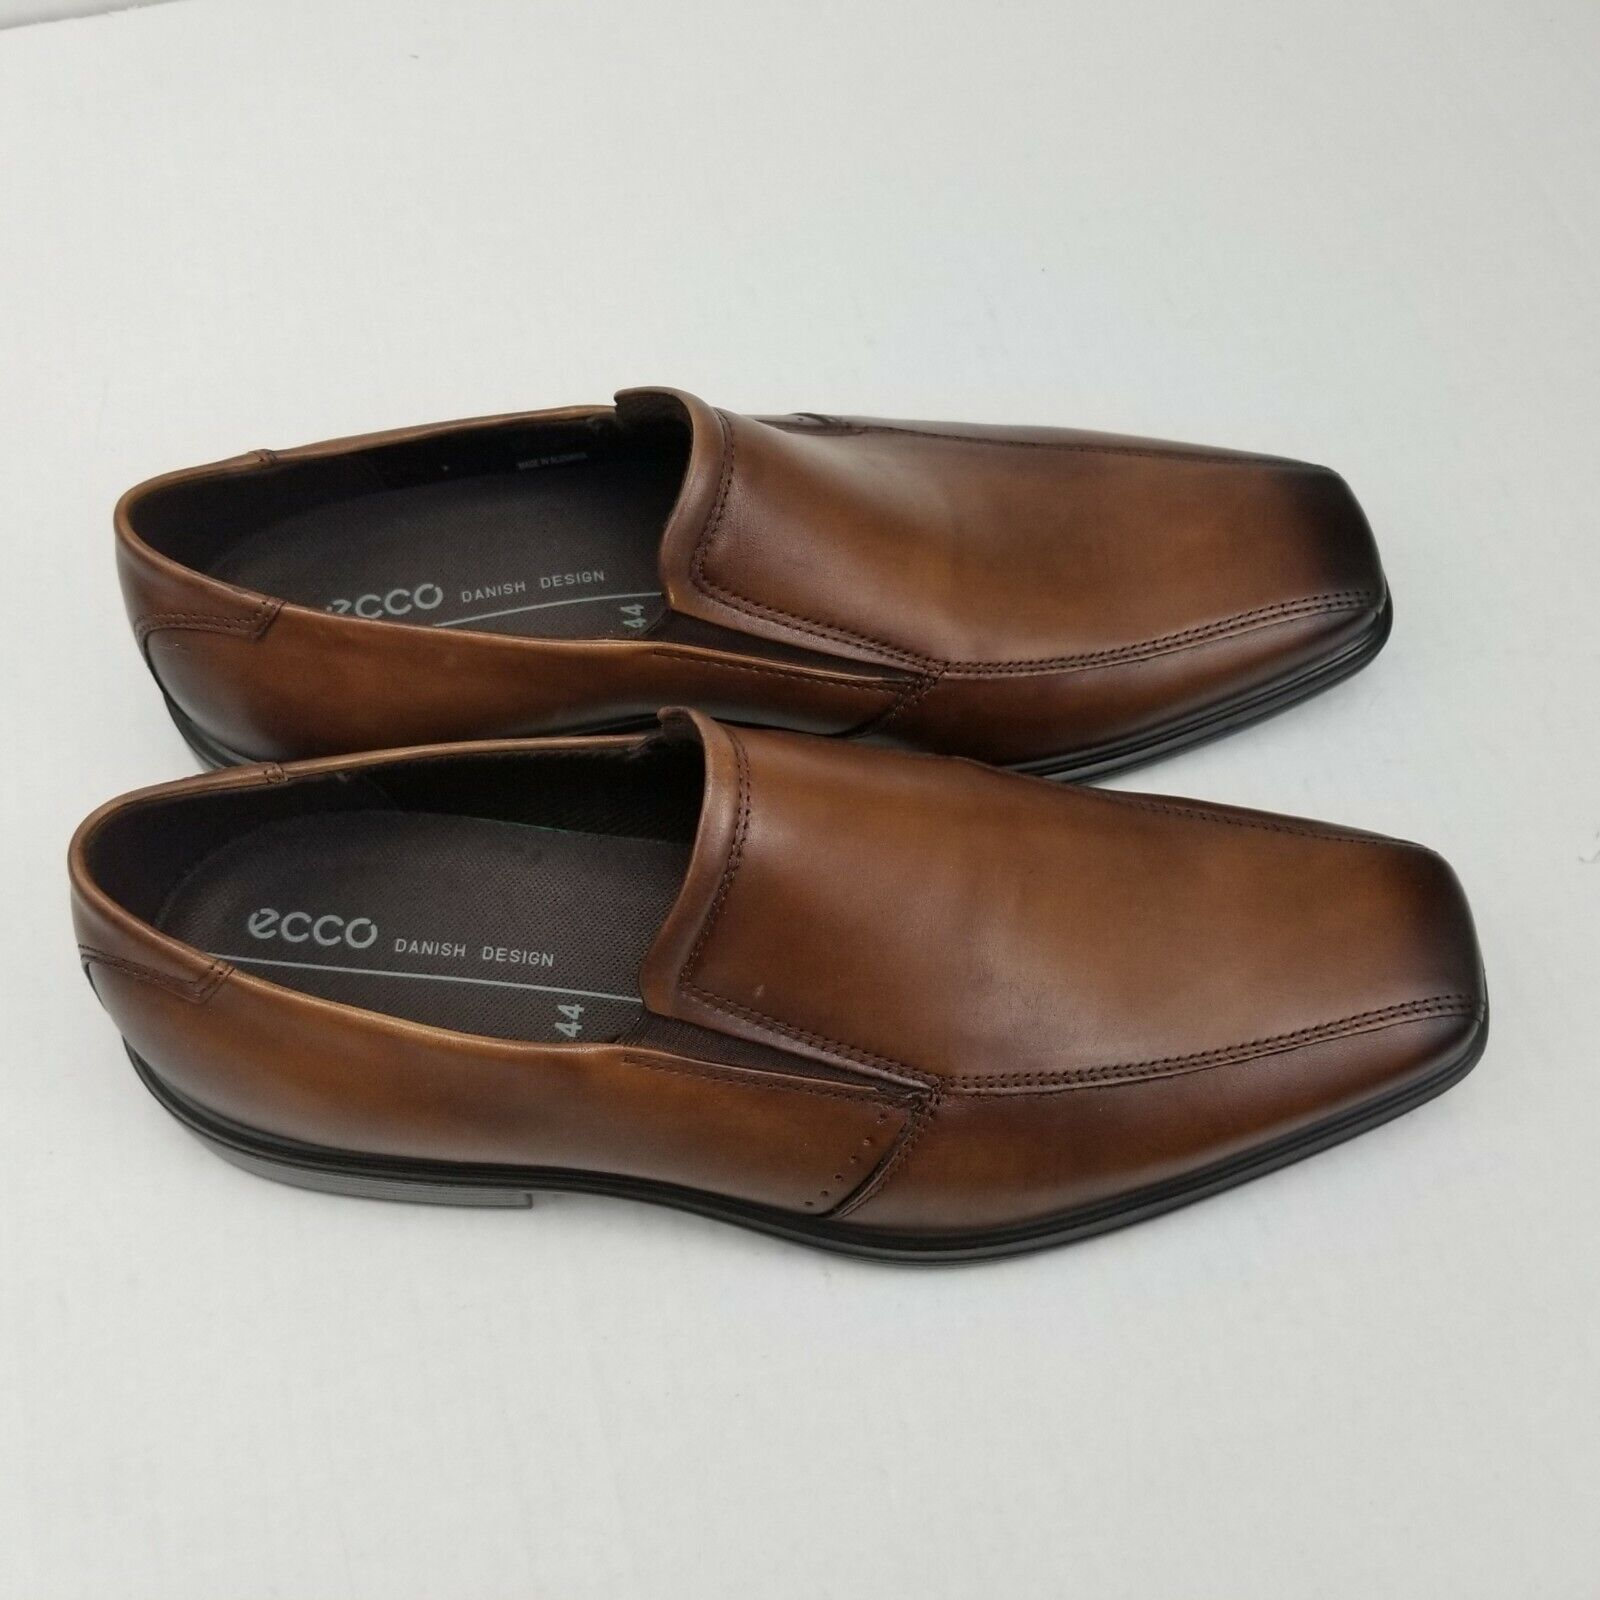 ECCO Minneapolis Mens Loafer shoes size US 10-10.5 (EUR 44) Amber BICYCLE TOE